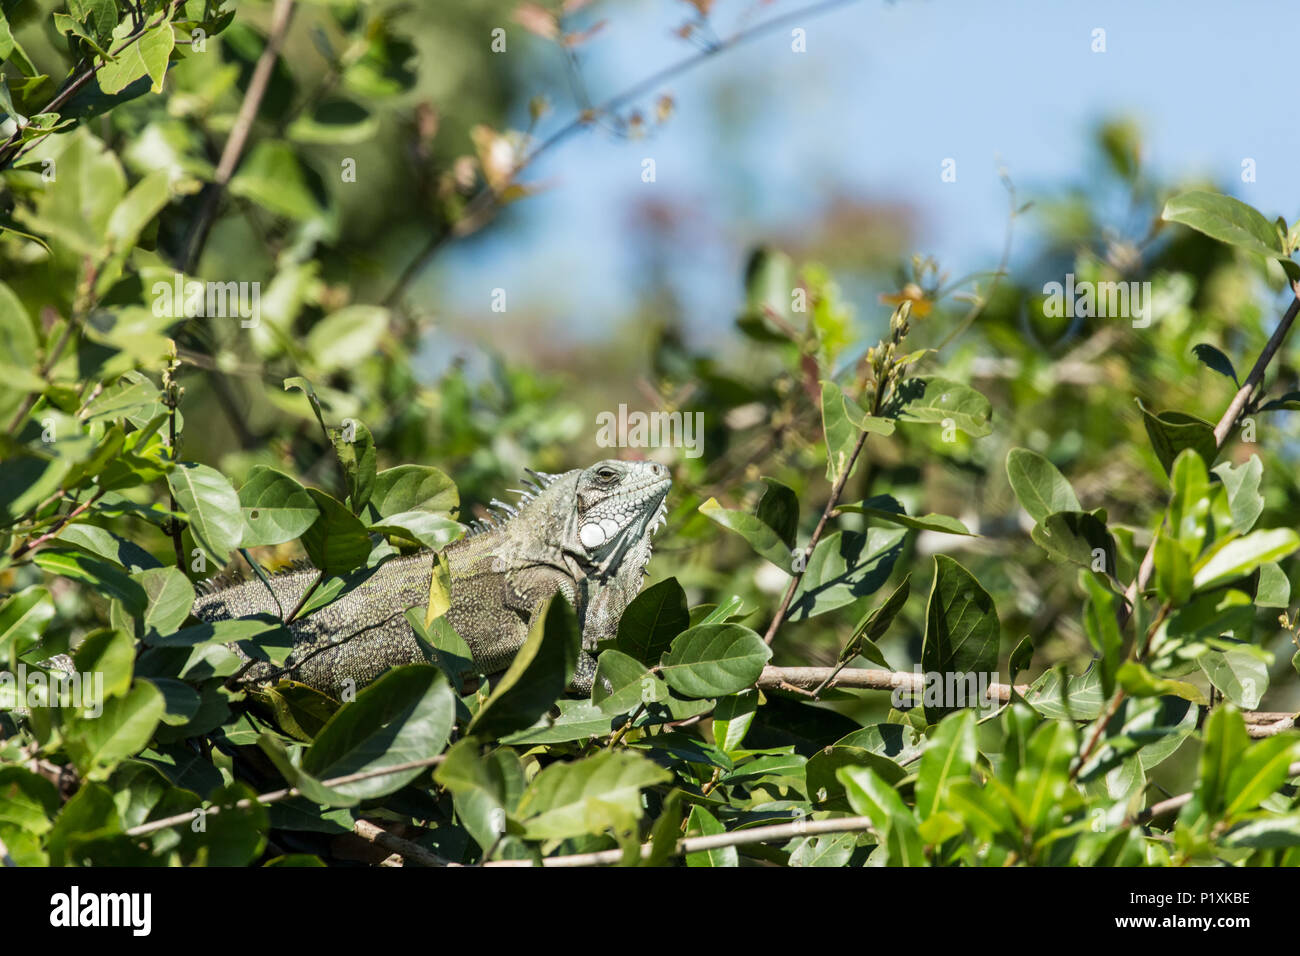 Green Iguana perched in a small tree in the Pantanal region, Mato Grosso, Brazil, South America - Stock Image